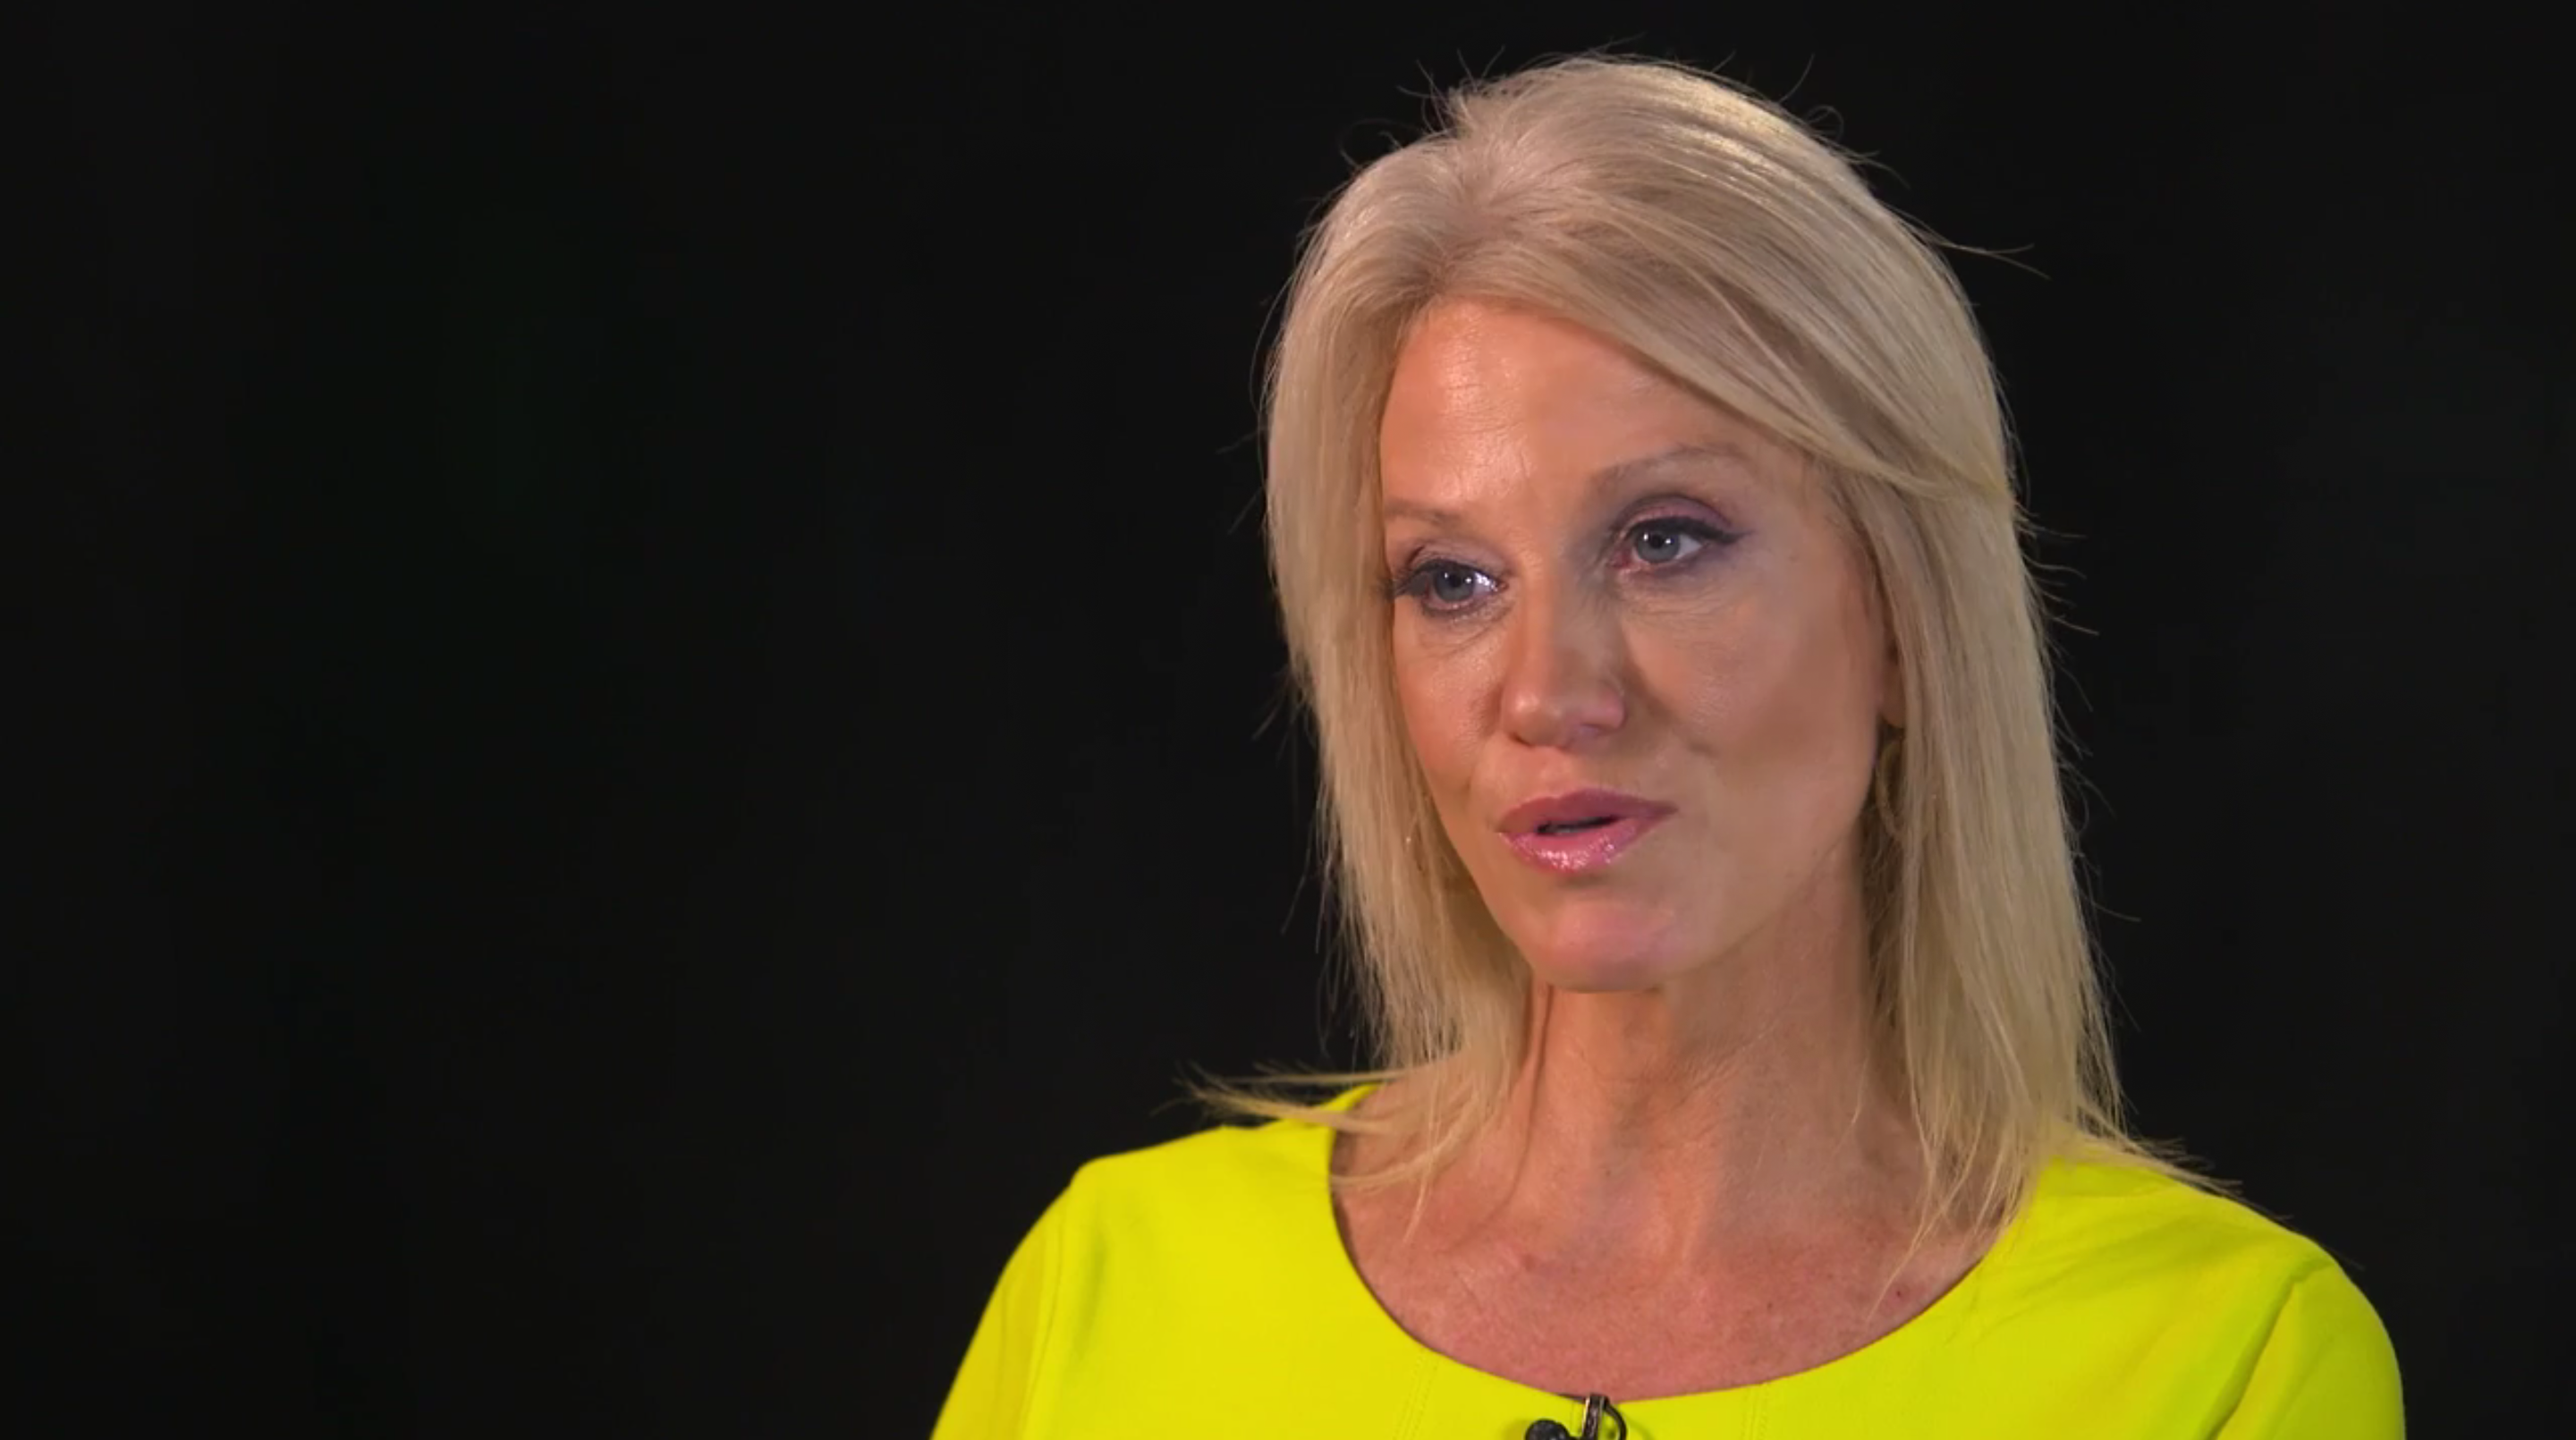 Kellyanne conway trump campaign manager photo yahoo news video